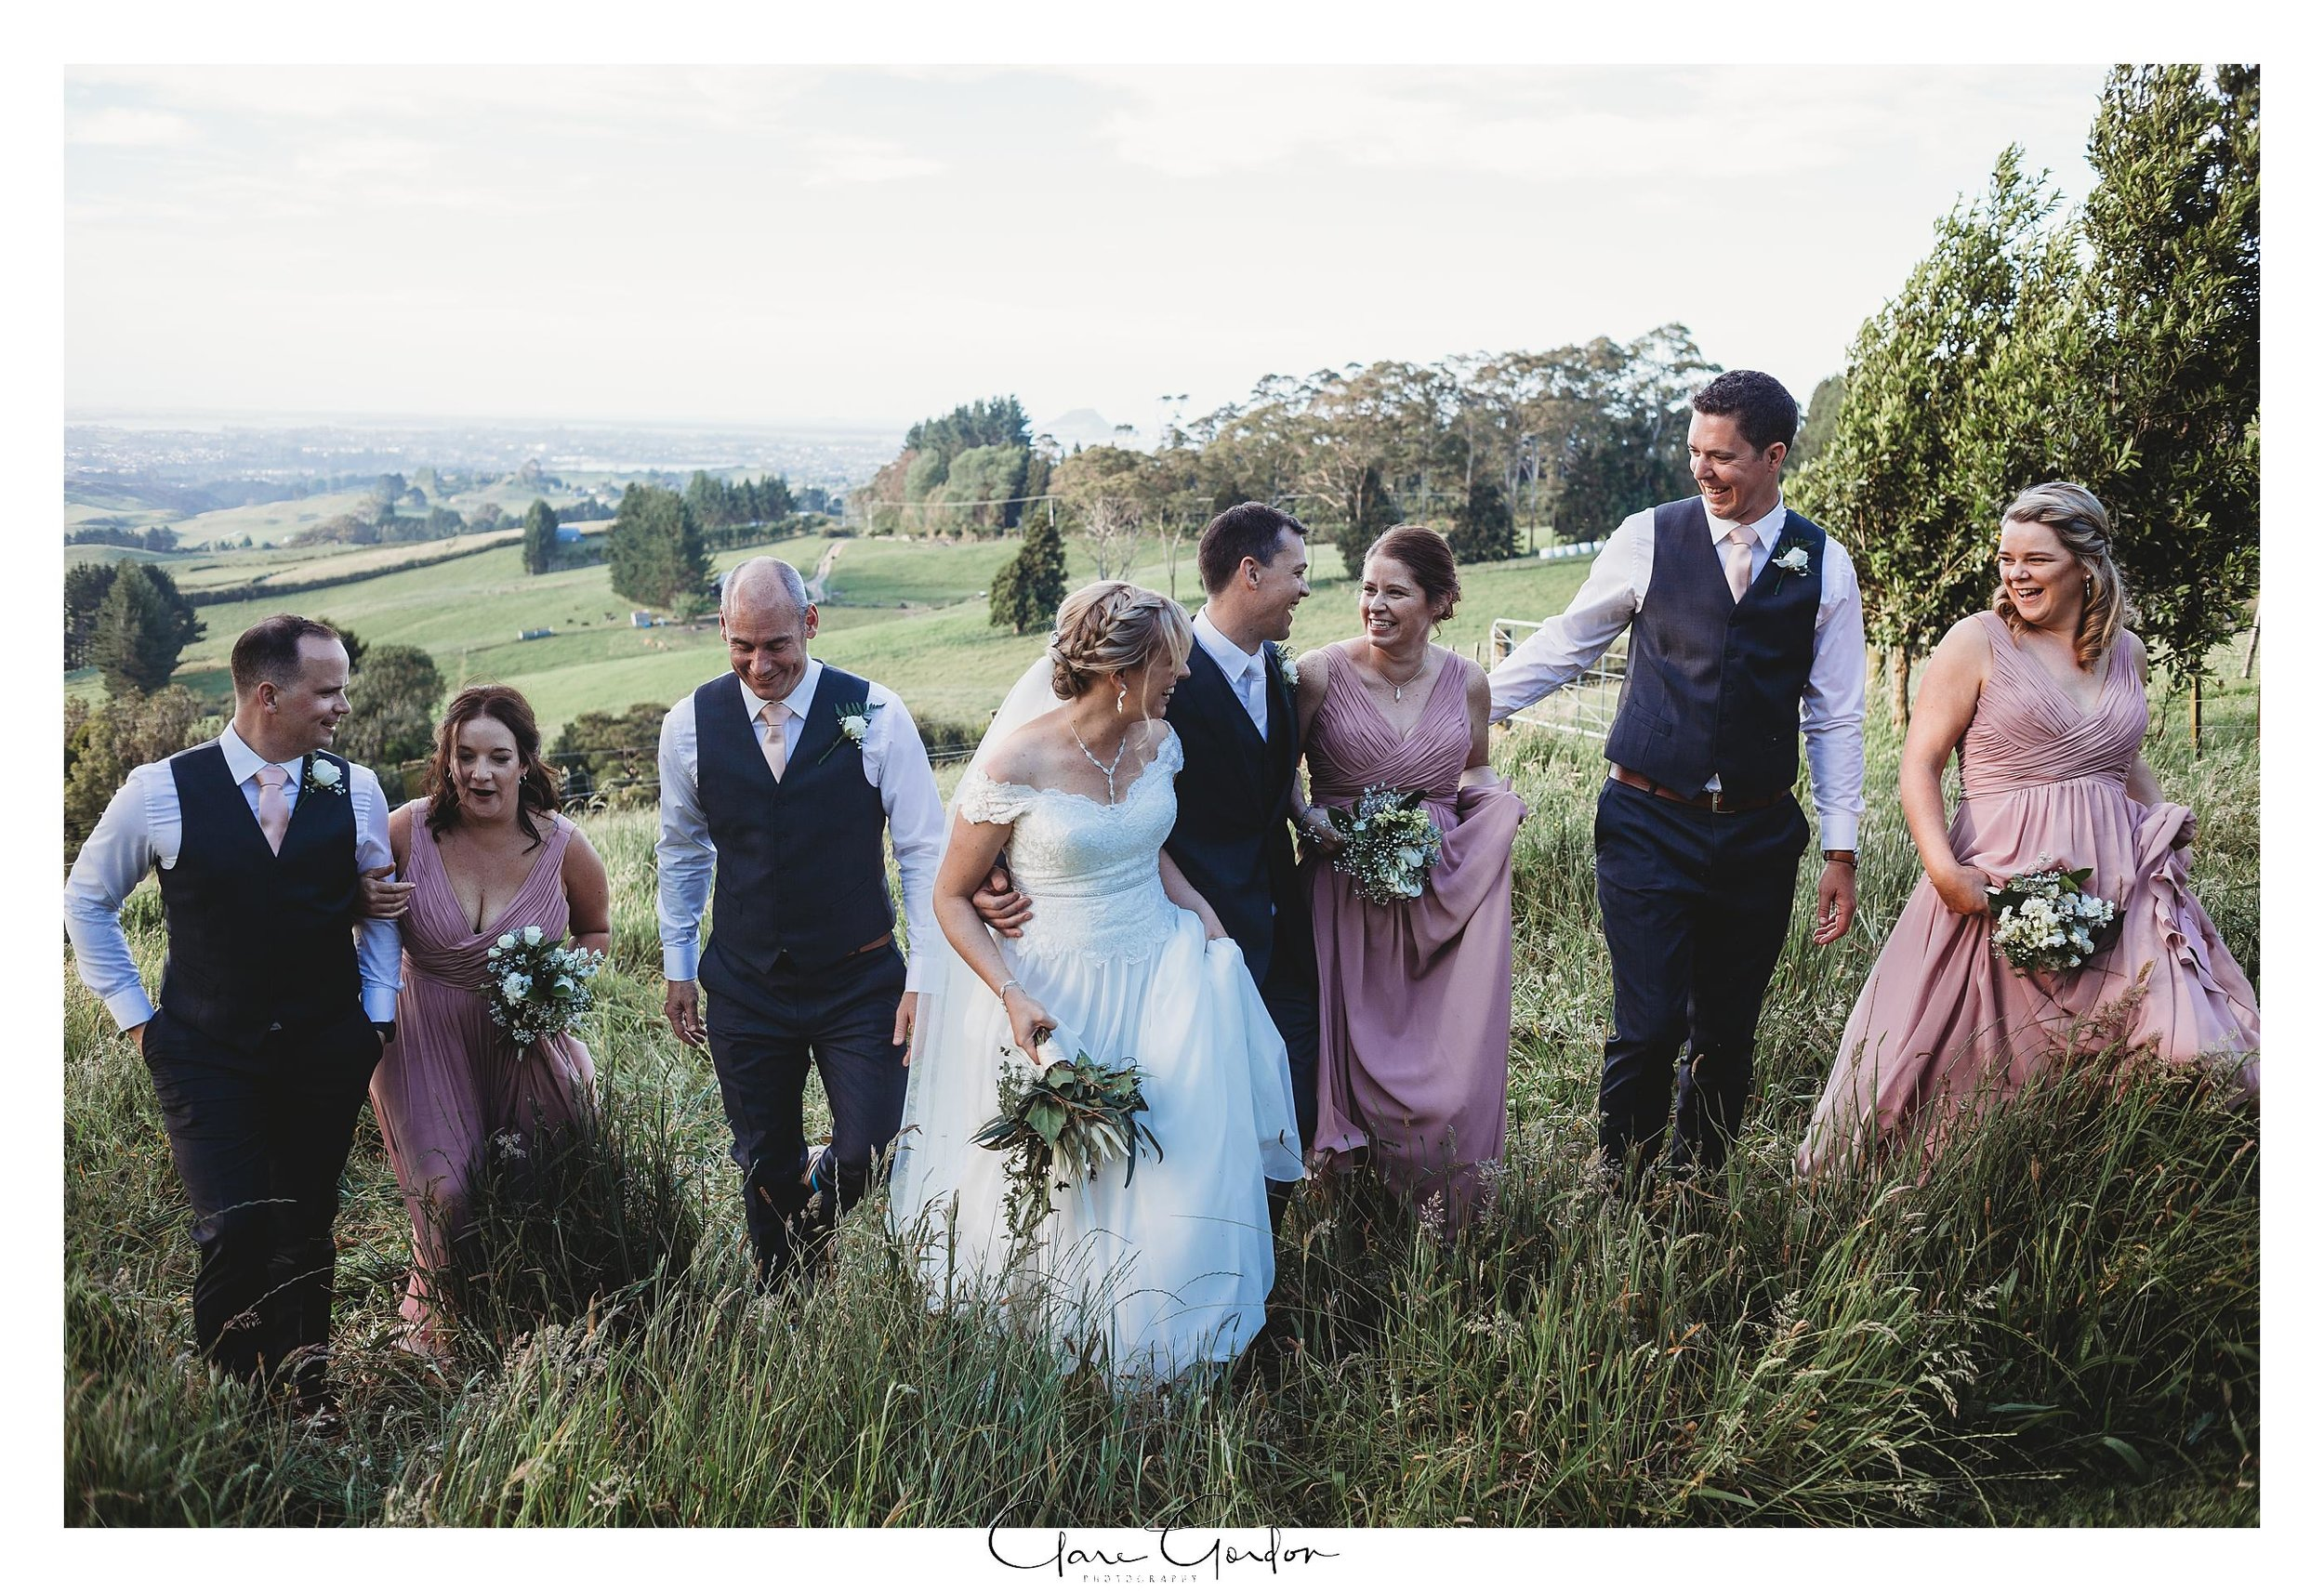 Eagle-Ridge-wedding-photo-bridal-party-Tauranga (128).jpg